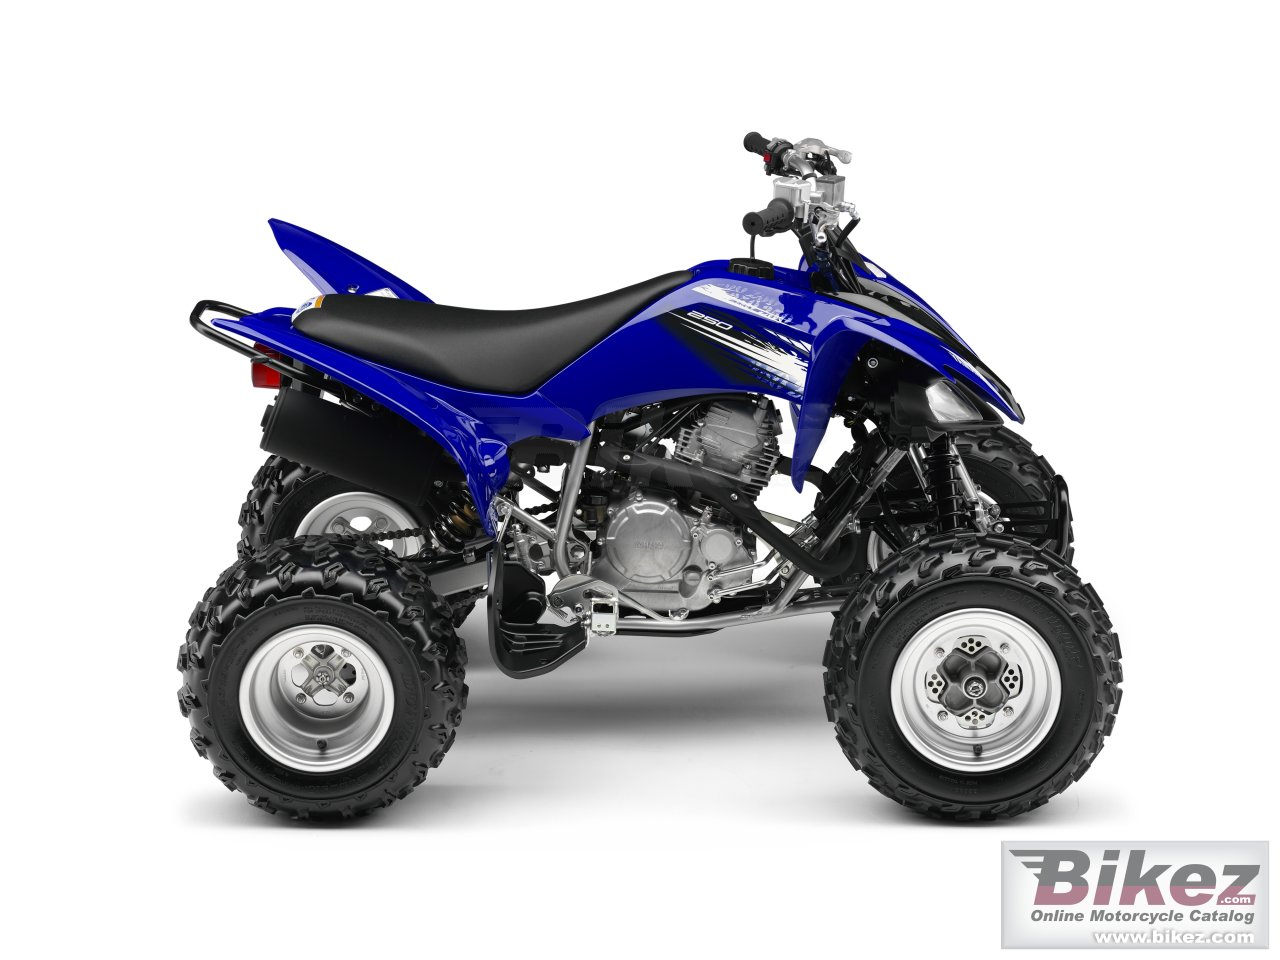 Big Yamaha yfm250r picture and wallpaper from Bikez.com